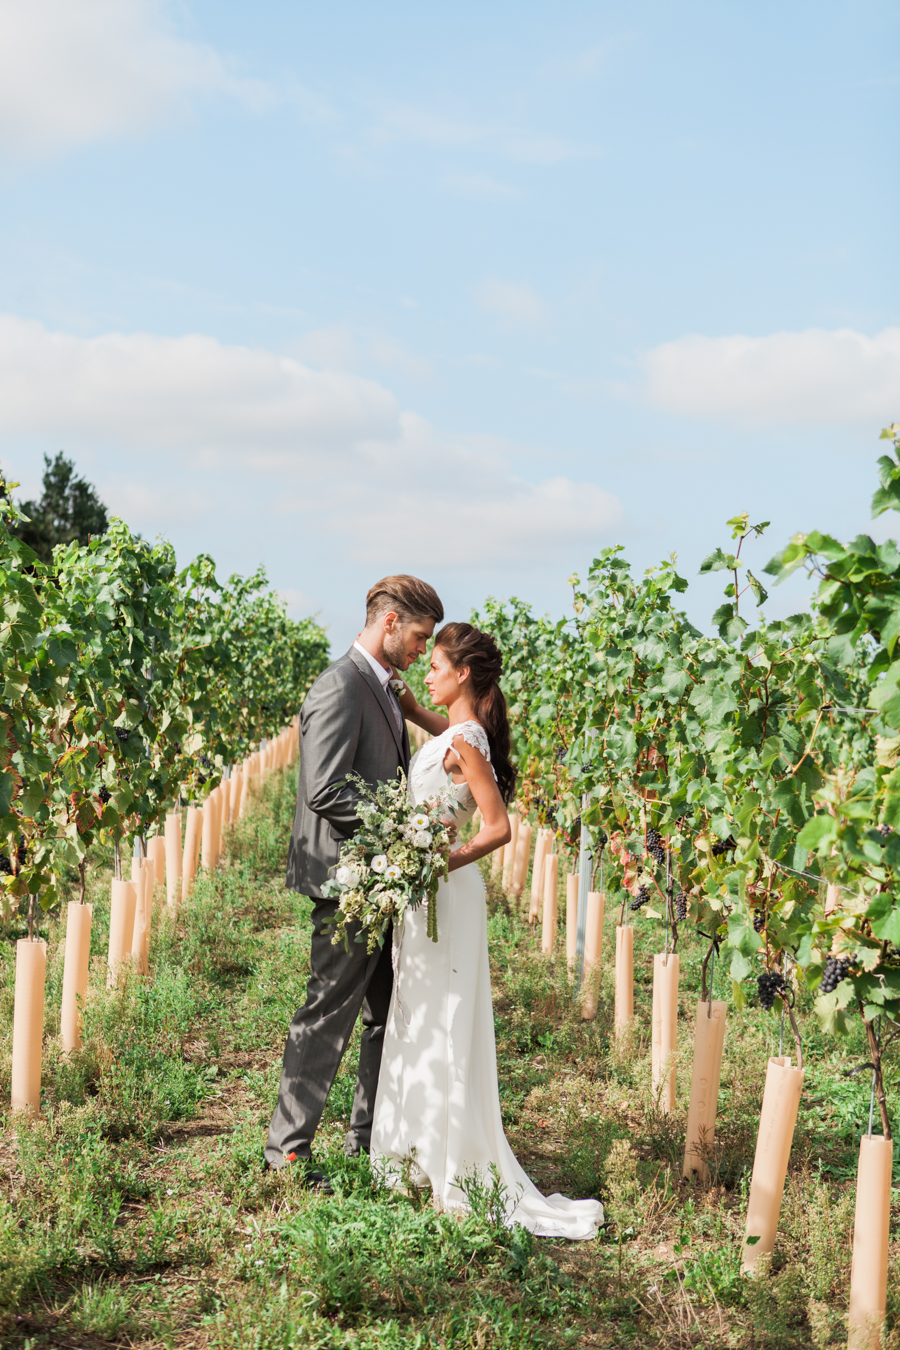 Norfolk wedding inspiration with tumbling green foliage, olive branch styling and a bride and groom in relaxed casual outfits, image credit Amanda Karen Photography